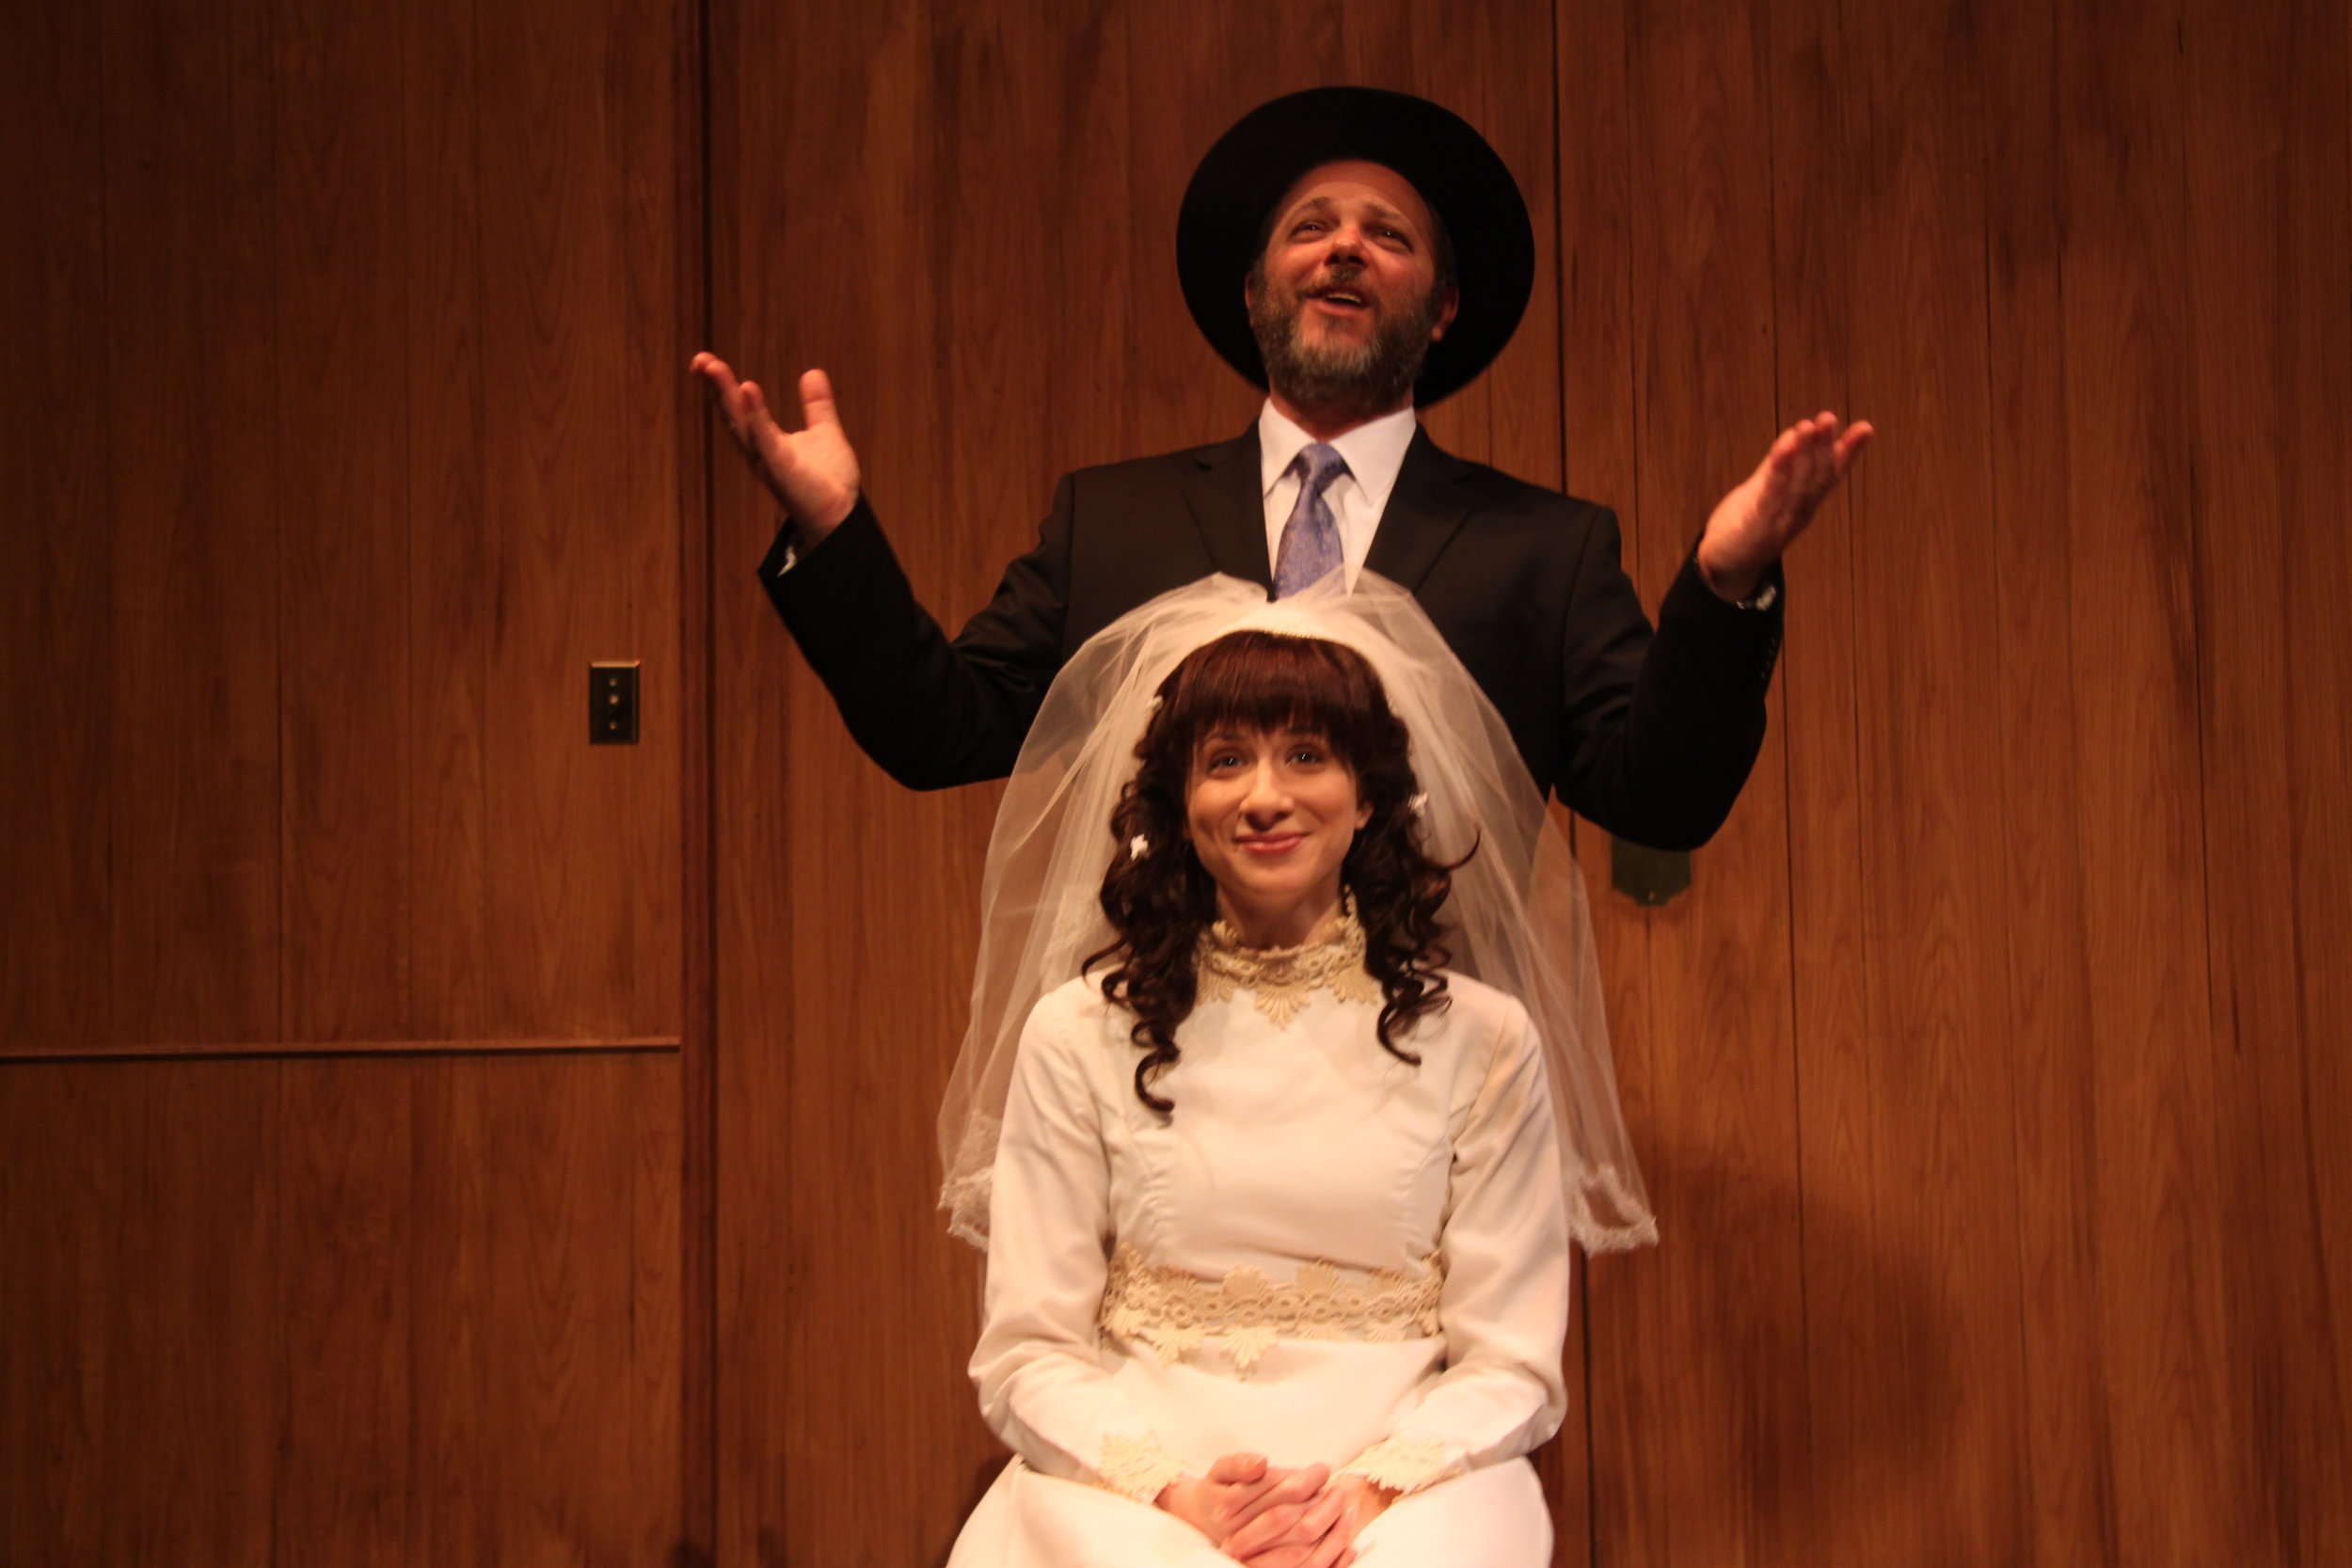 Richard Greenblatt as Morty and Julie Tepperman as Rachel in YICHUD (Seclusion)